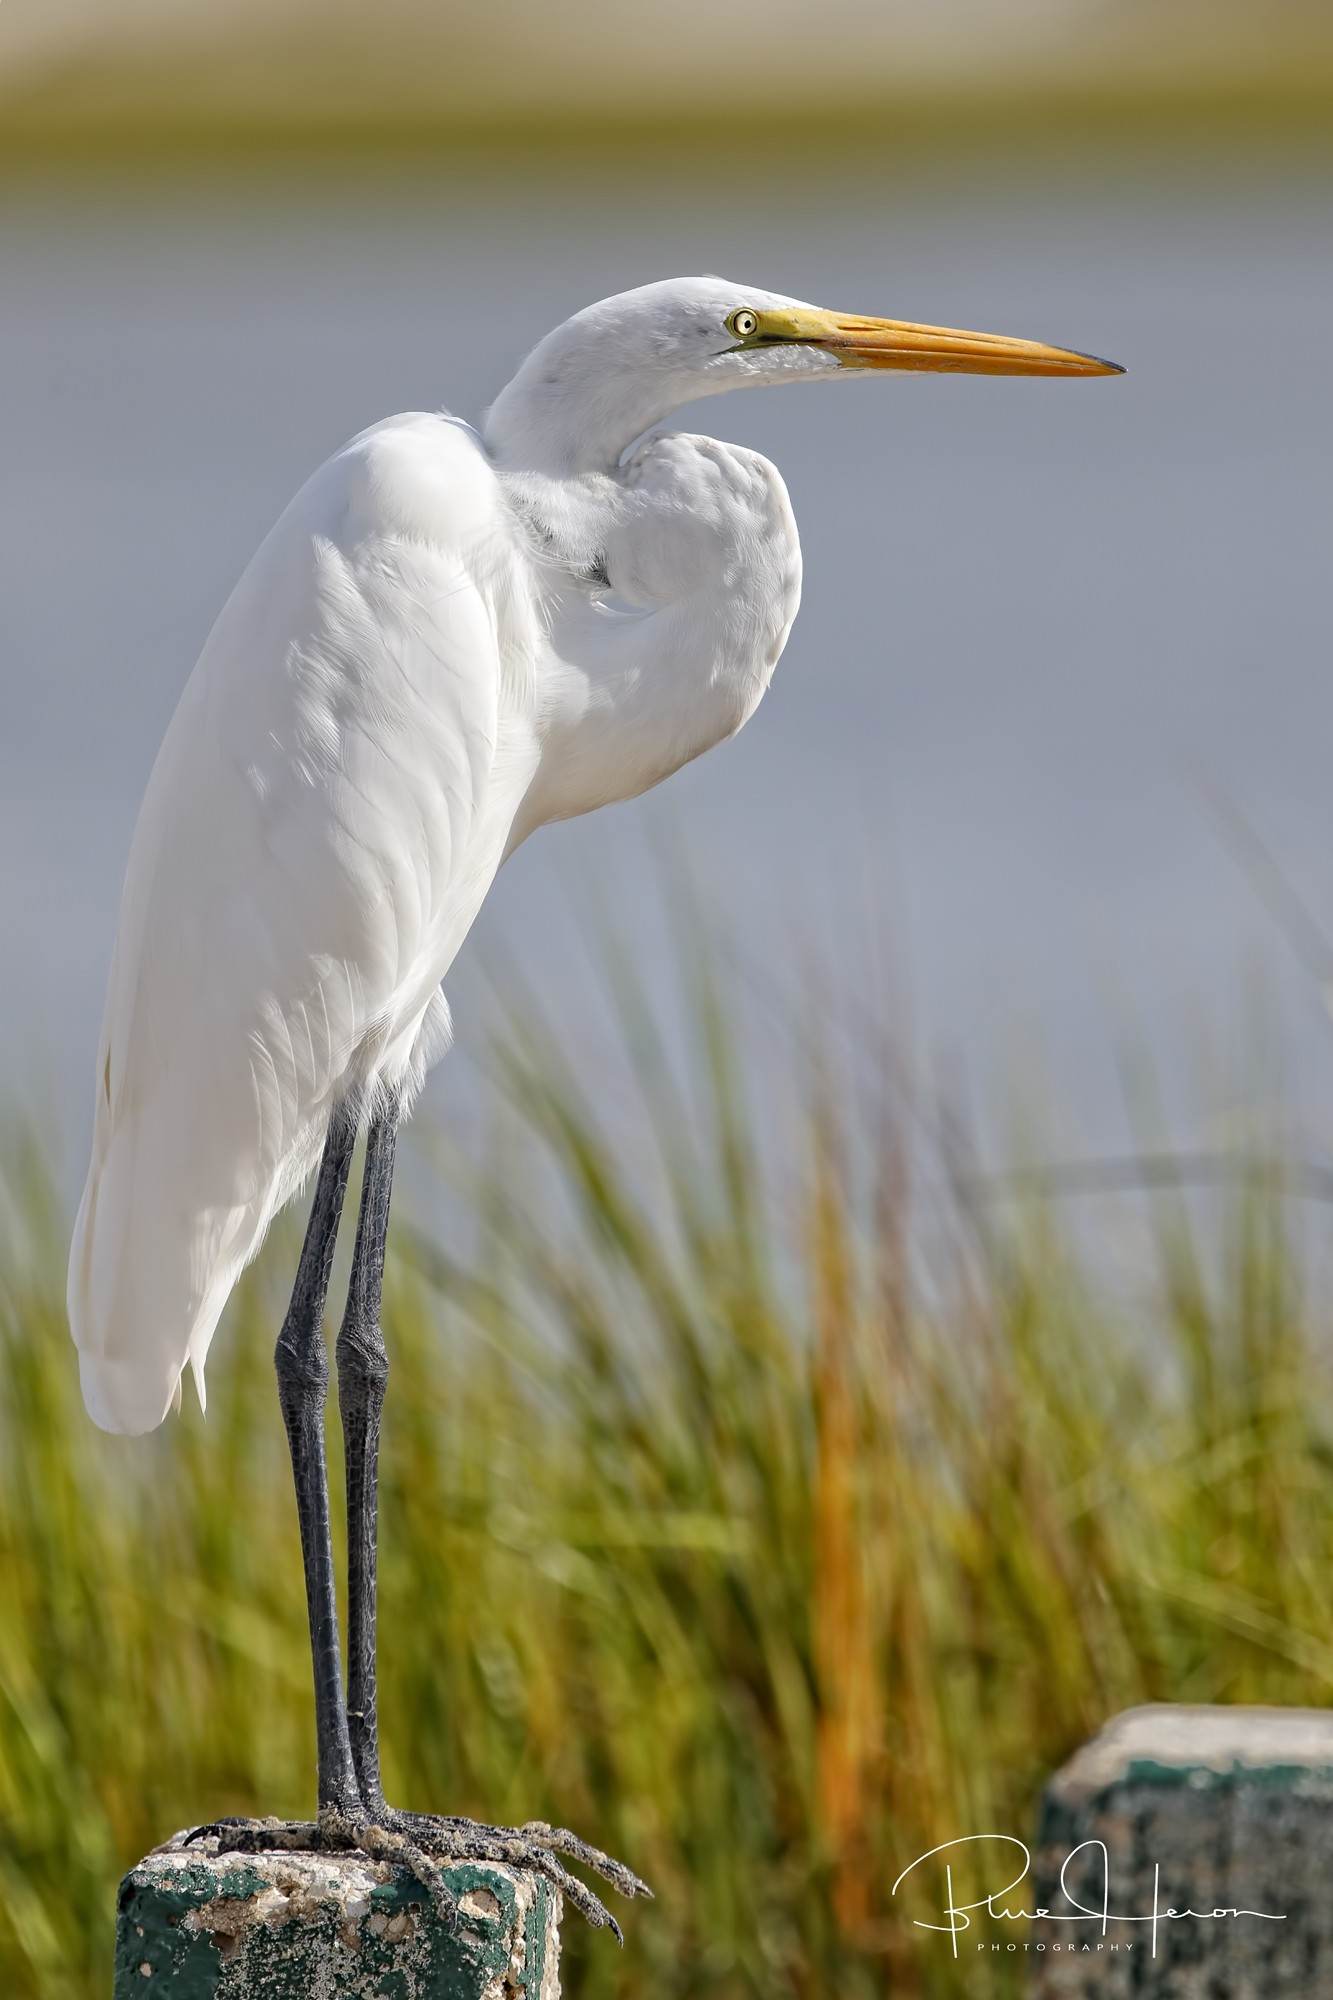 This Great Egret was keeping a close eye on the local fisherman...